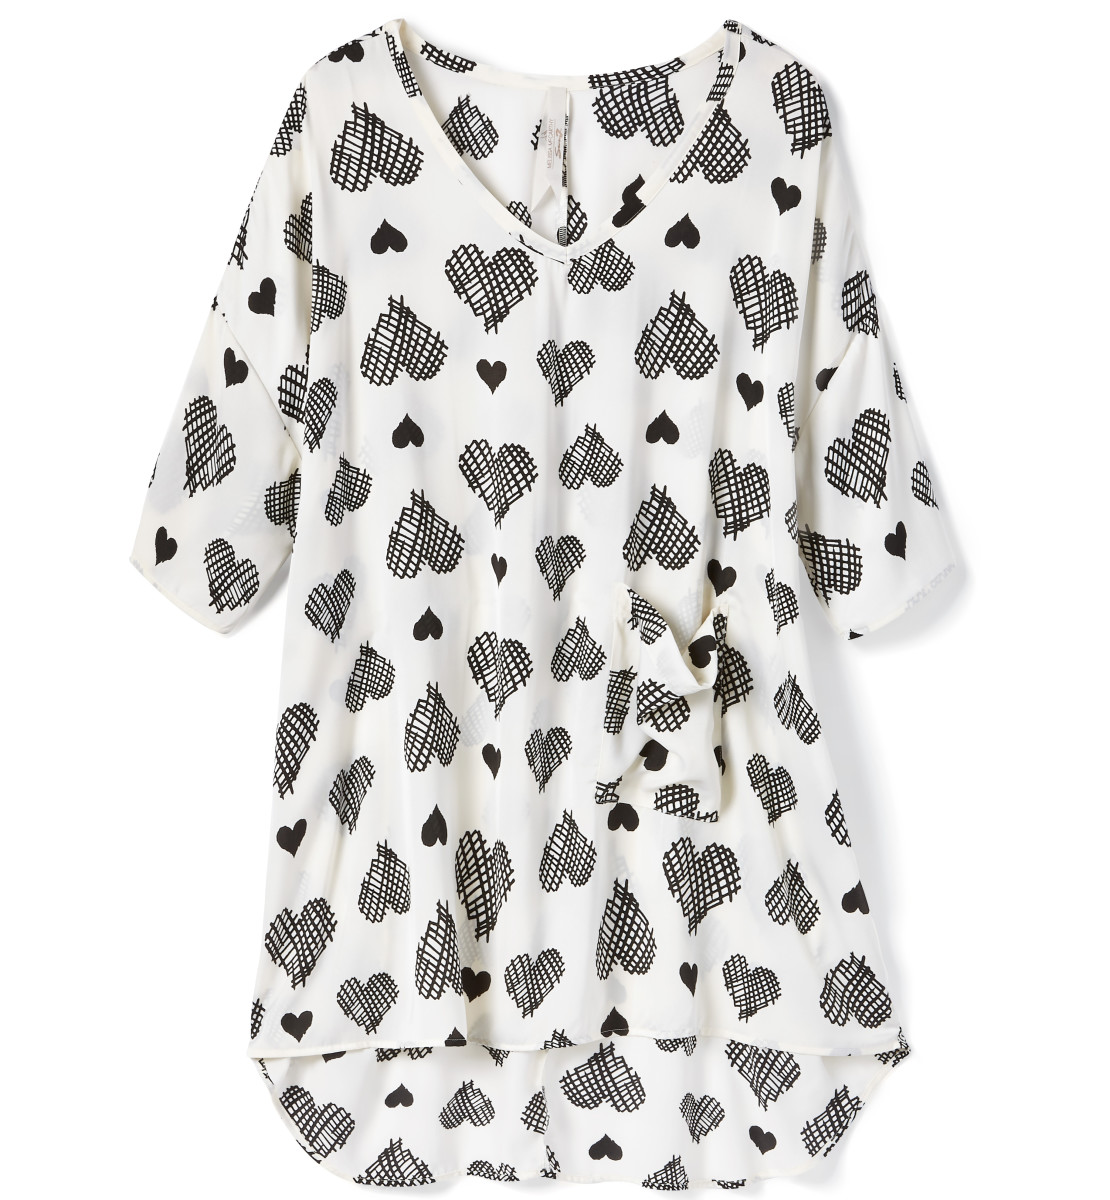 Melissa McCarthy Seven7: printed heart blouse at Penningtons in Canada